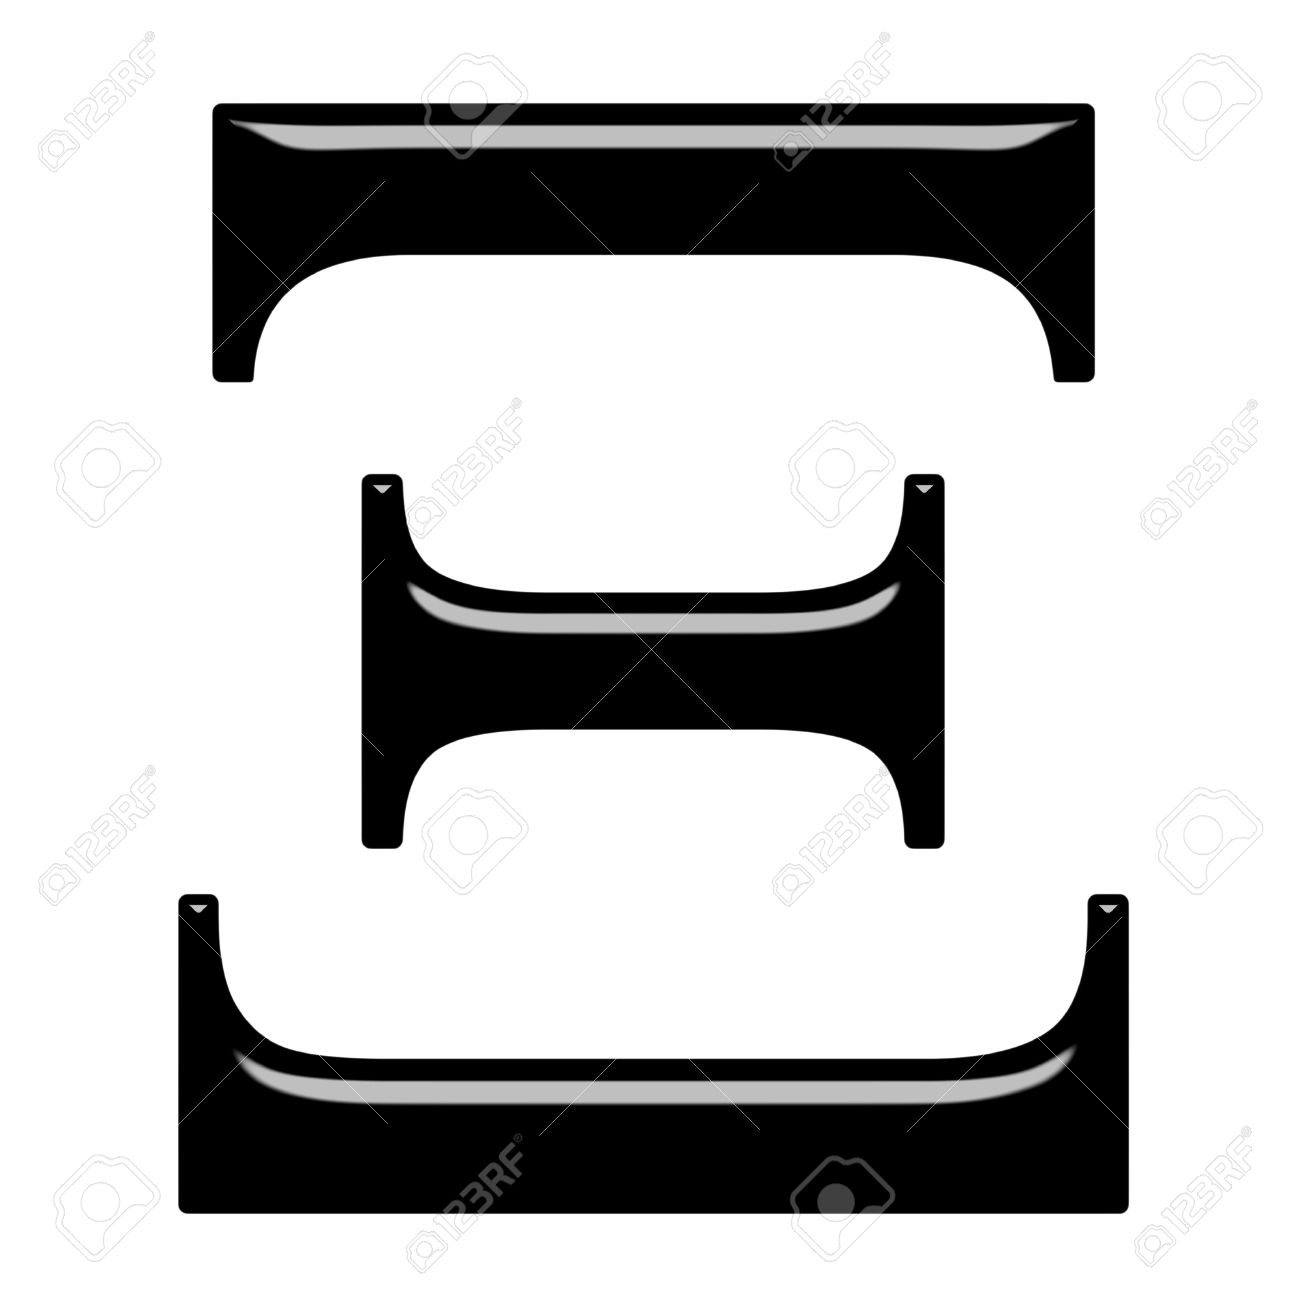 Xi greek letter clipart svg royalty free 3d Greek Letter Xi Isolated In White Stock Photo, Picture And ... svg royalty free